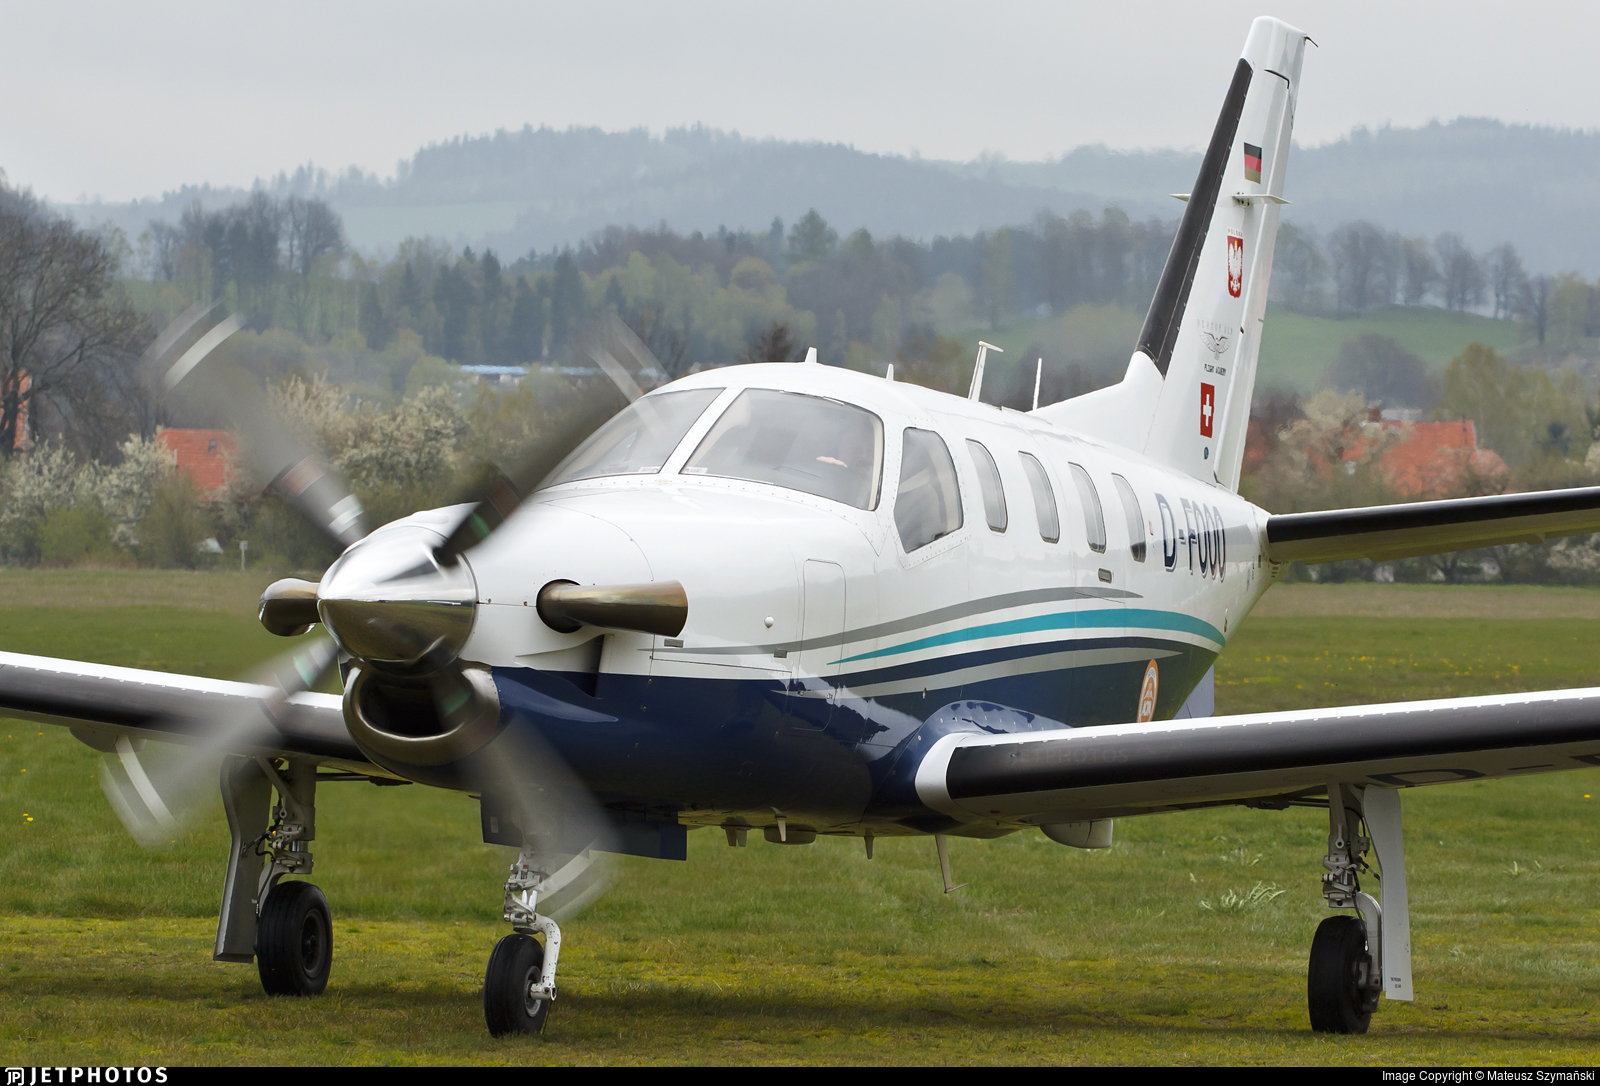 D-FOOO - Socata TBM-700 - Private